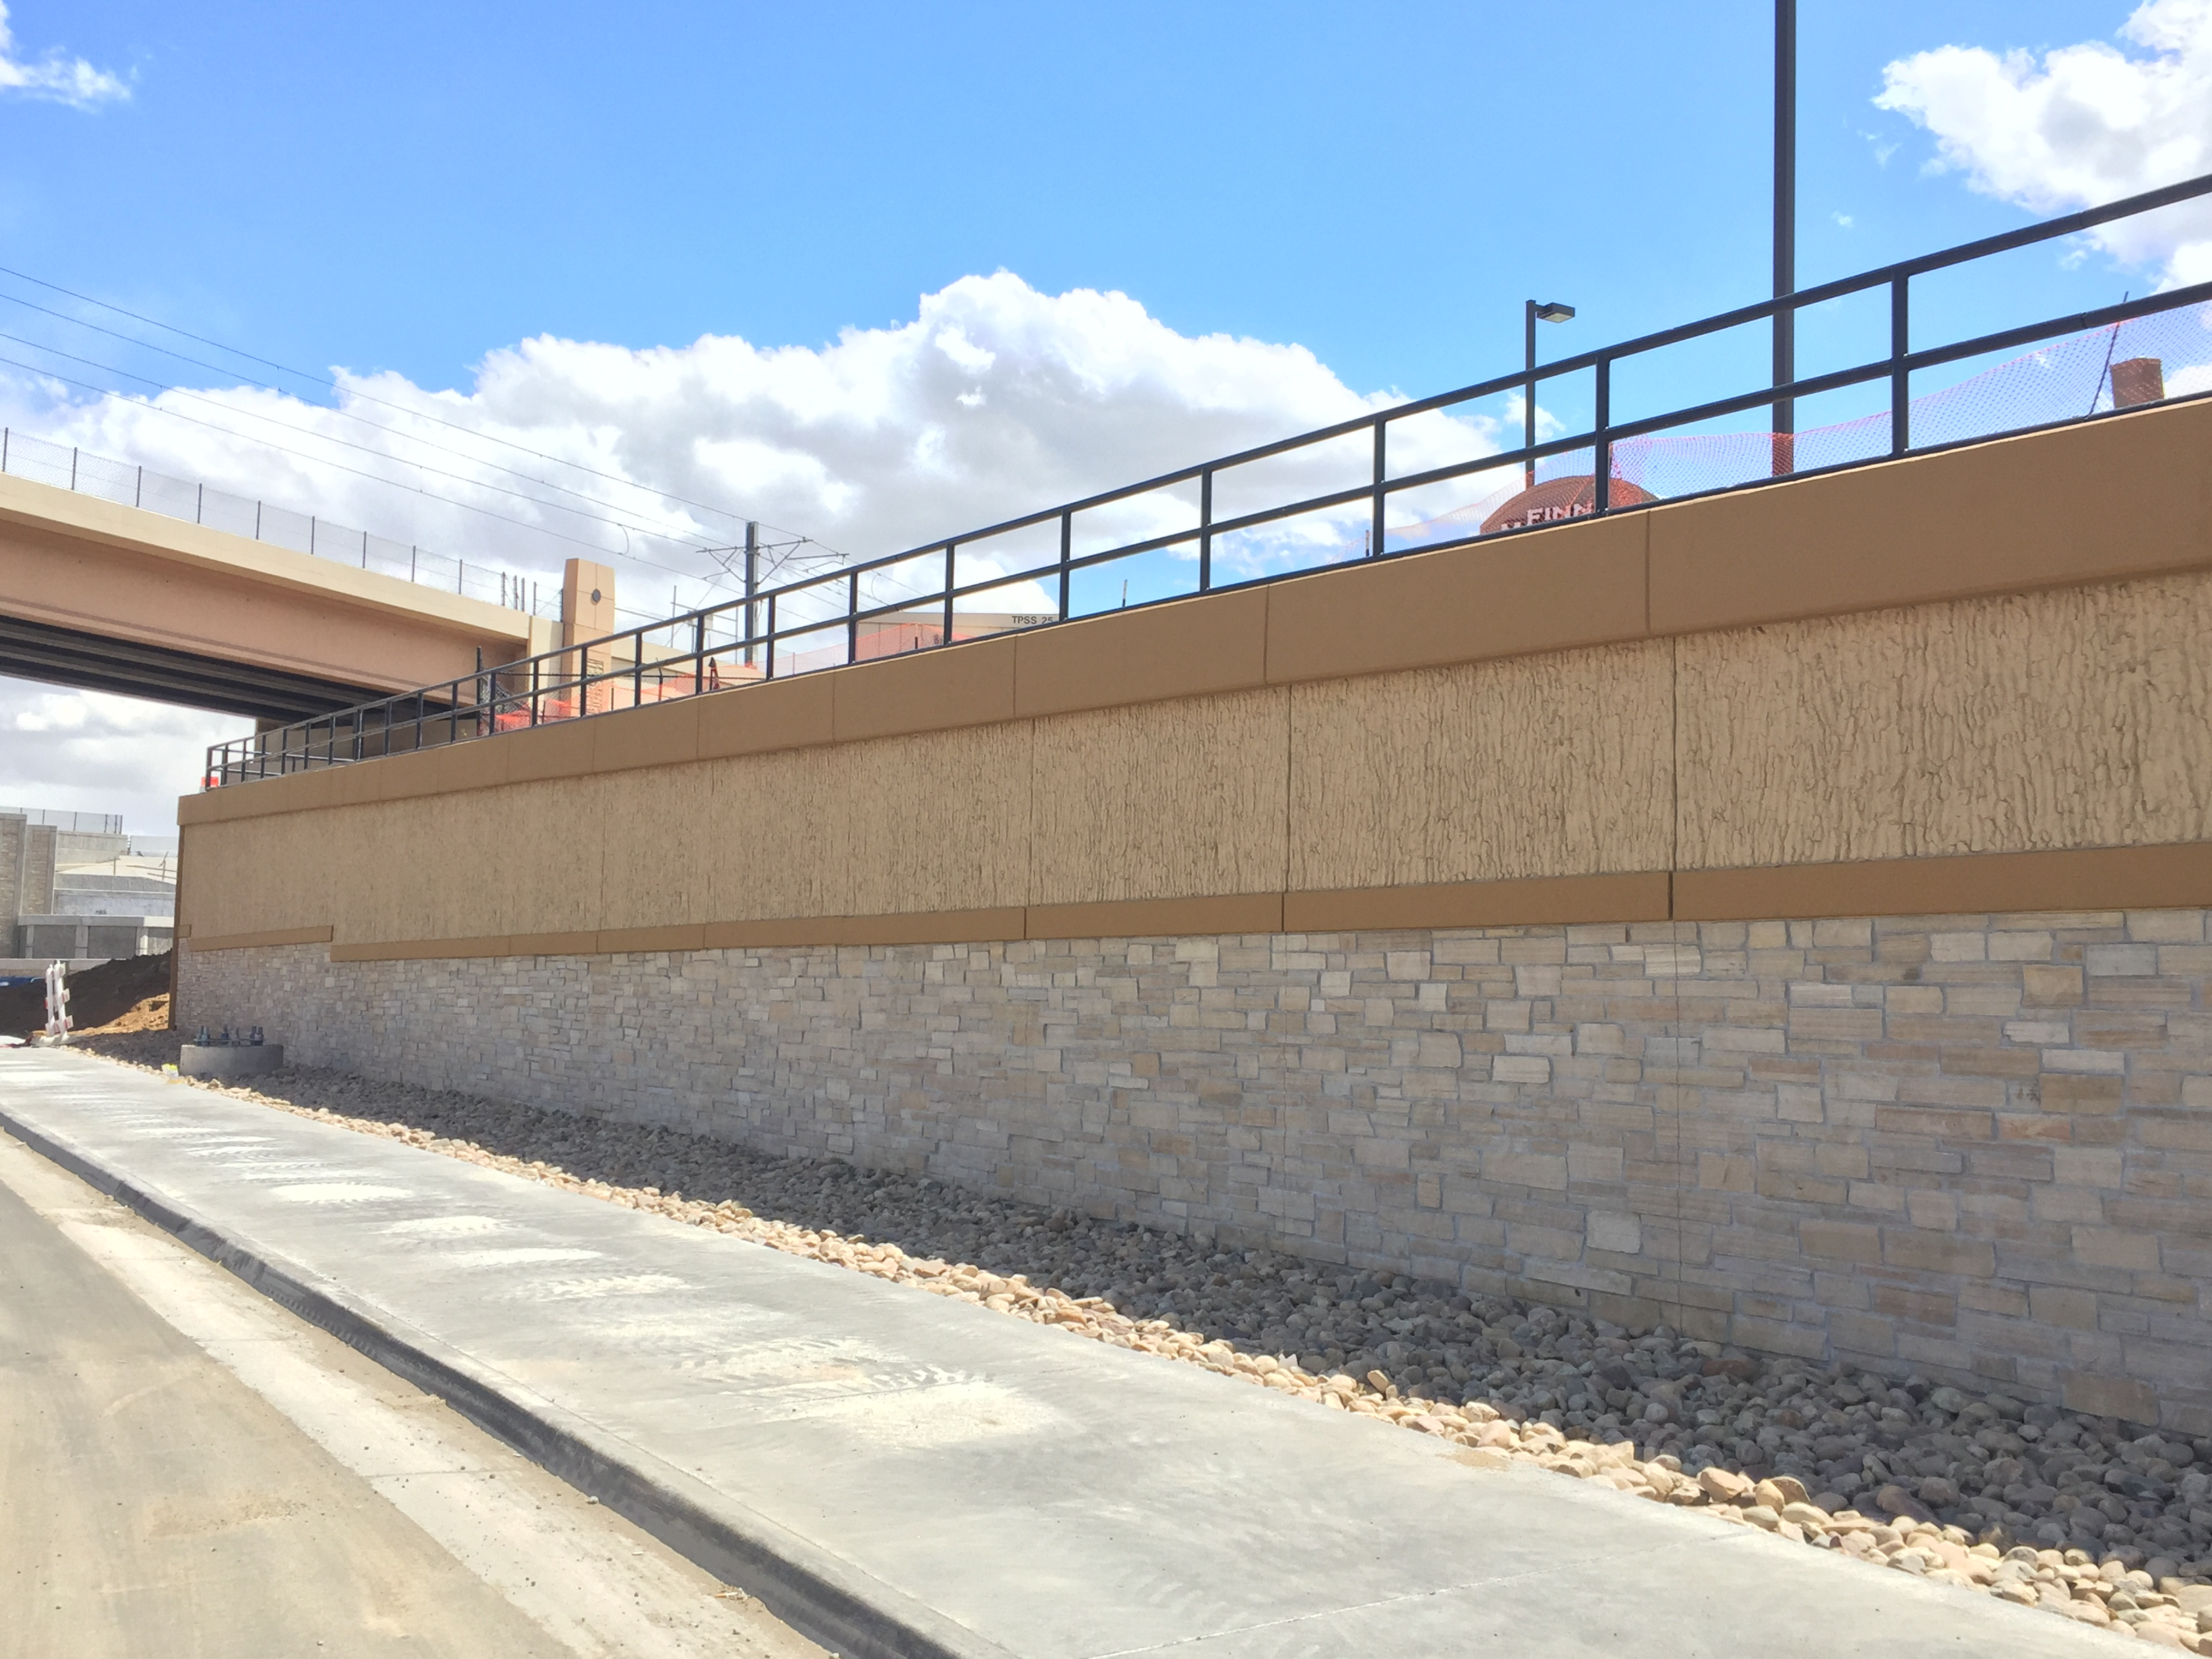 New wall south of Arapahoe Road - April 2017